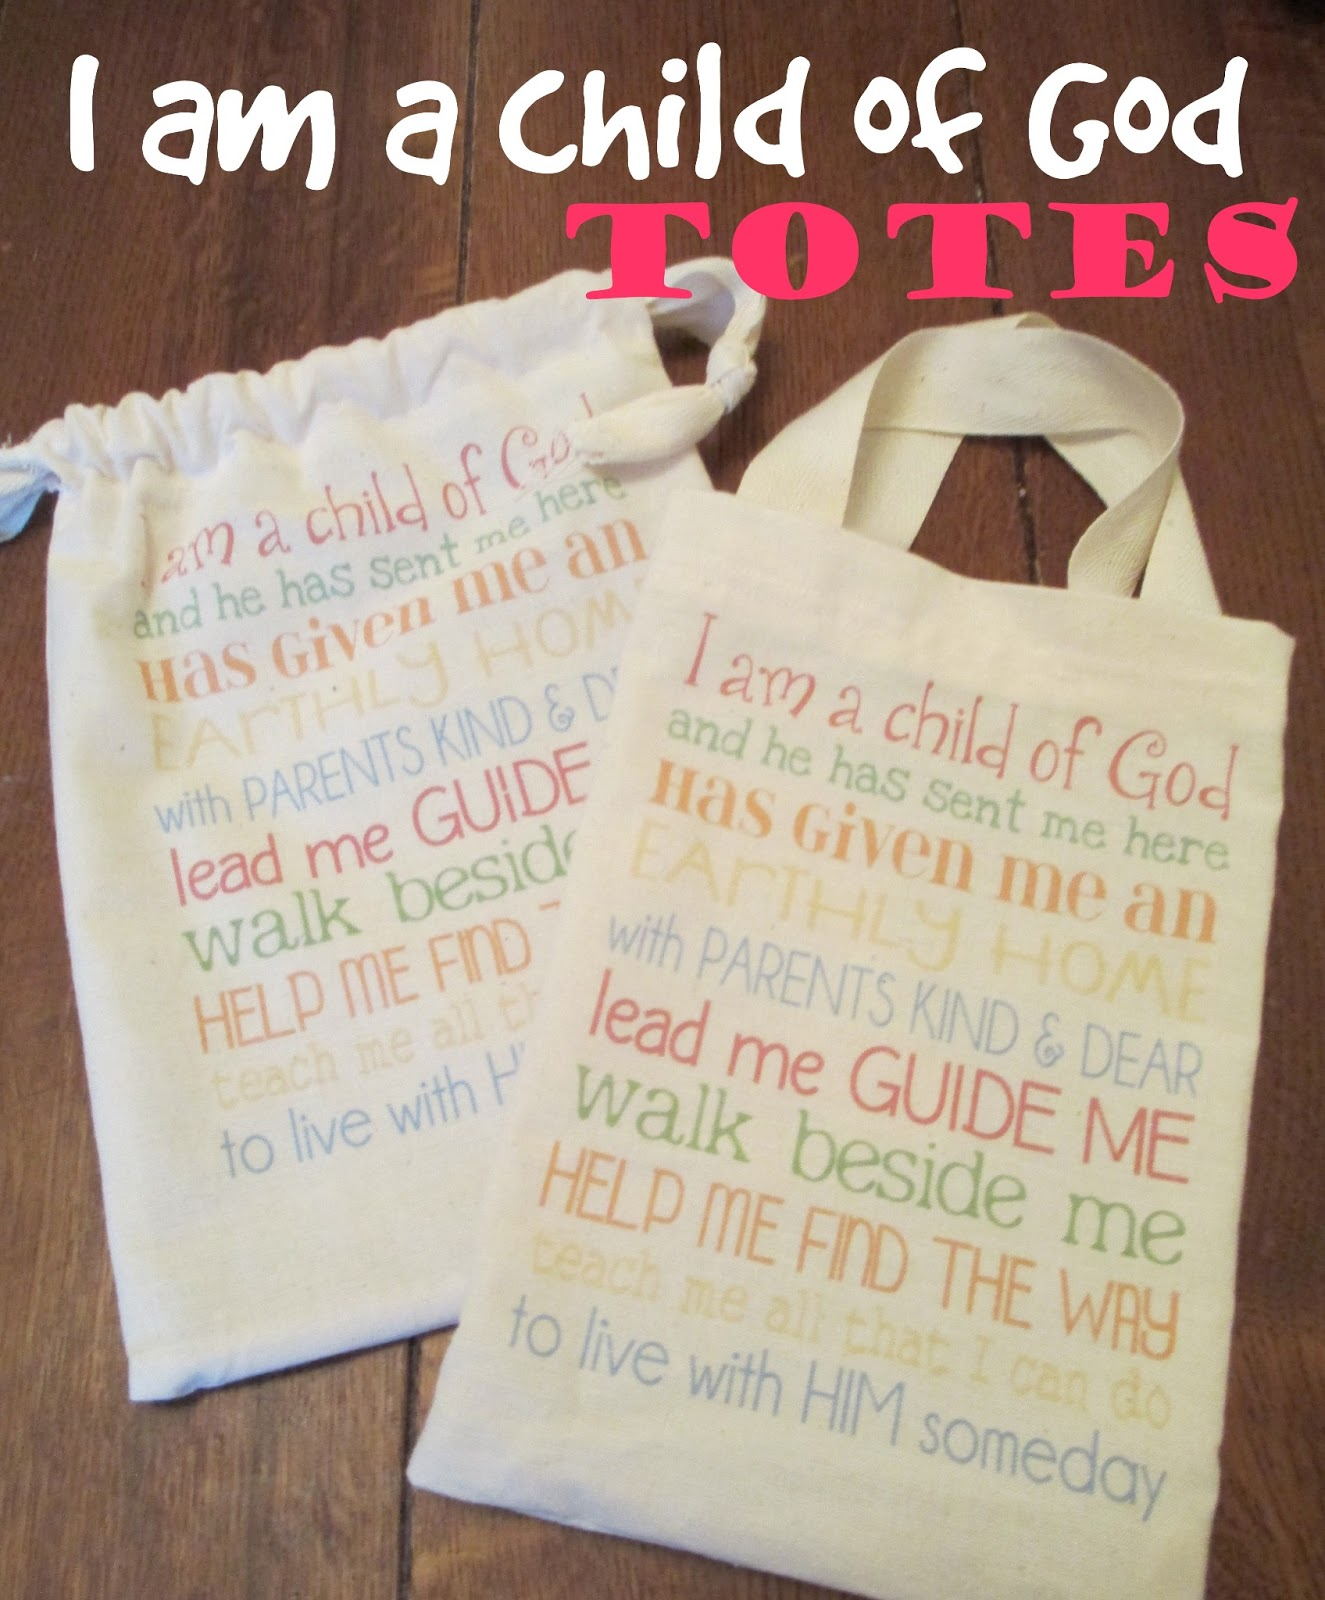 I Am A Child Of God Tote Sugardoodle Posted Link The Other Day To Wonderful Blog Entitled My Computer Is Canvas That Has Load Free Printables